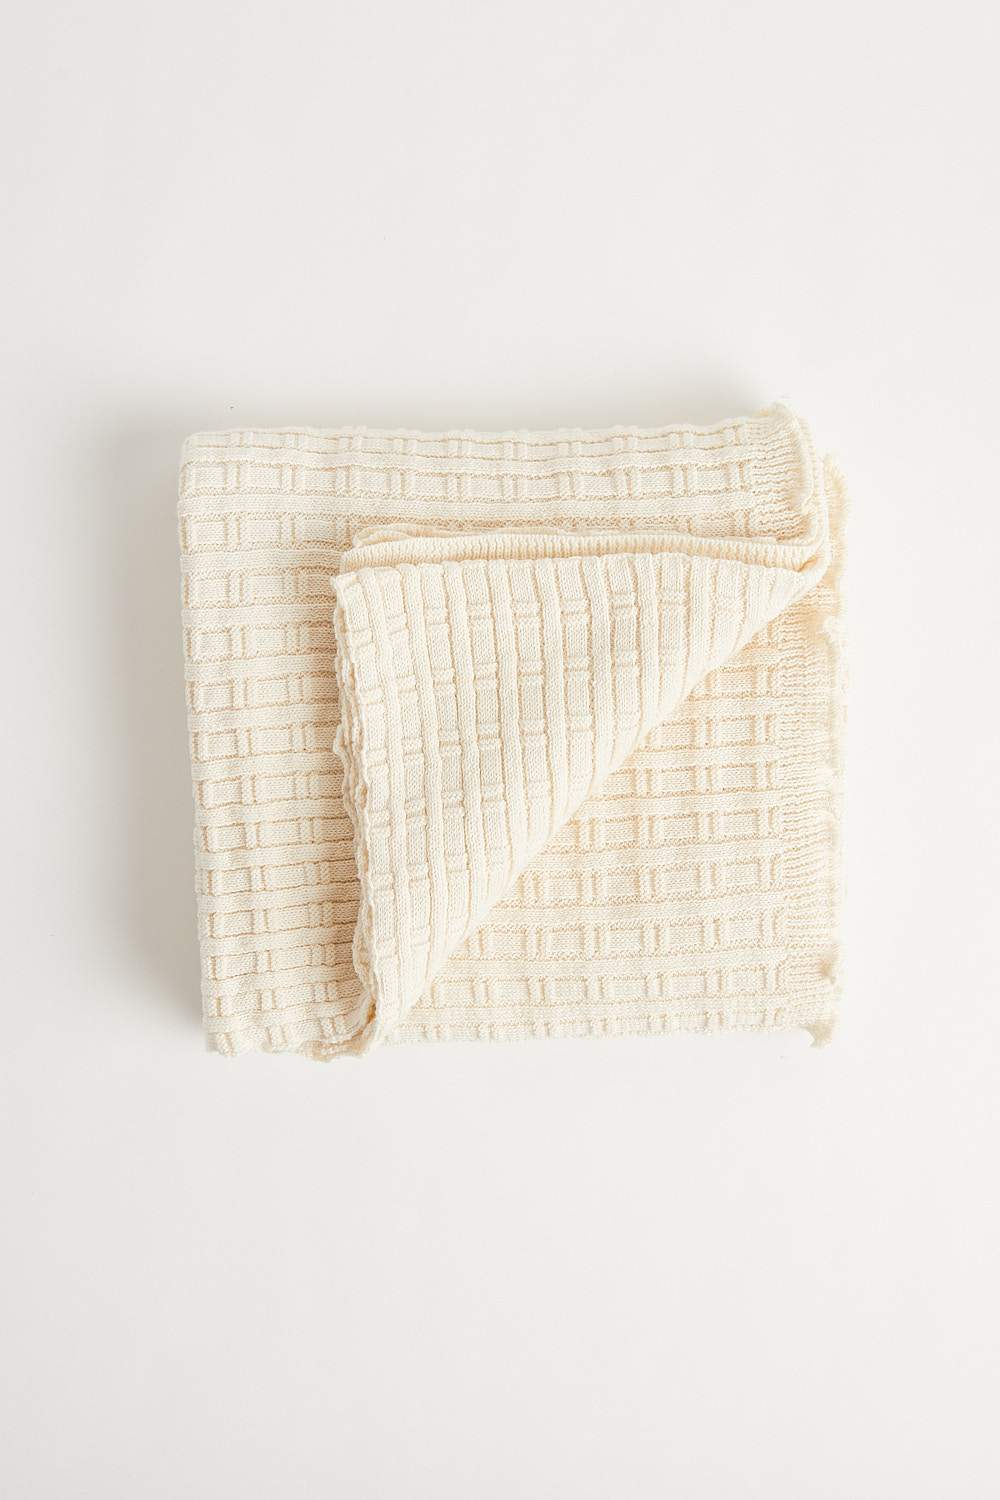 Bamboo Stitch Blanket (100cm x 100cm - Natural) Blanket Oz Knit